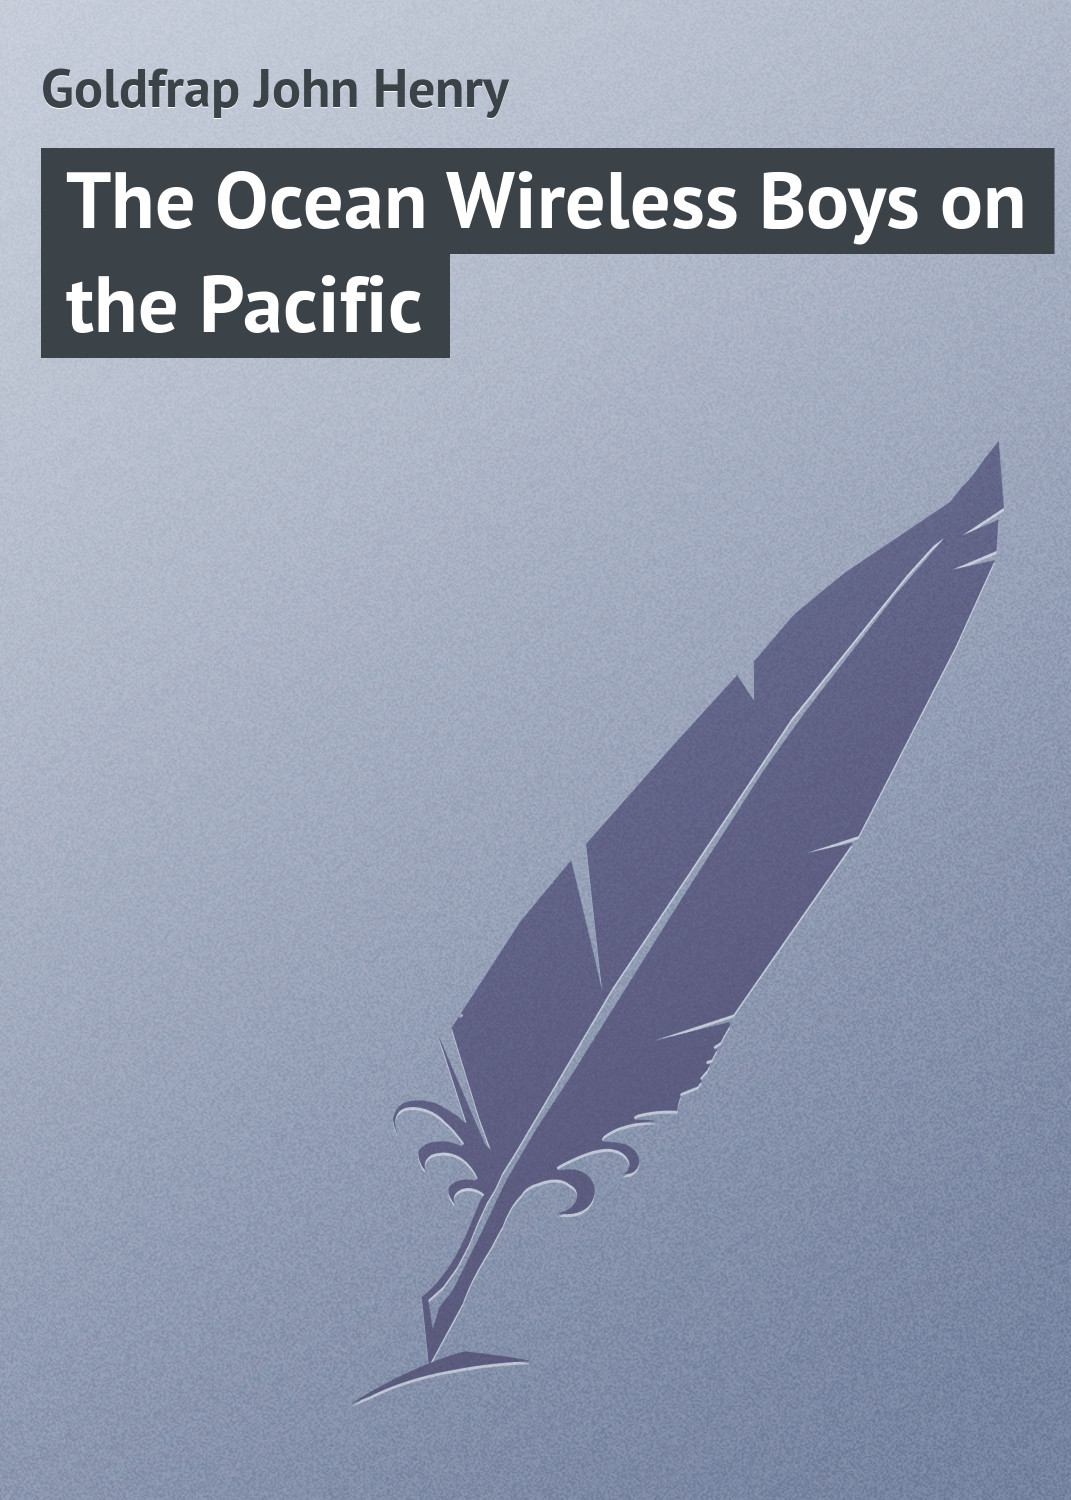 купить Goldfrap John Henry The Ocean Wireless Boys on the Pacific по цене 0 рублей